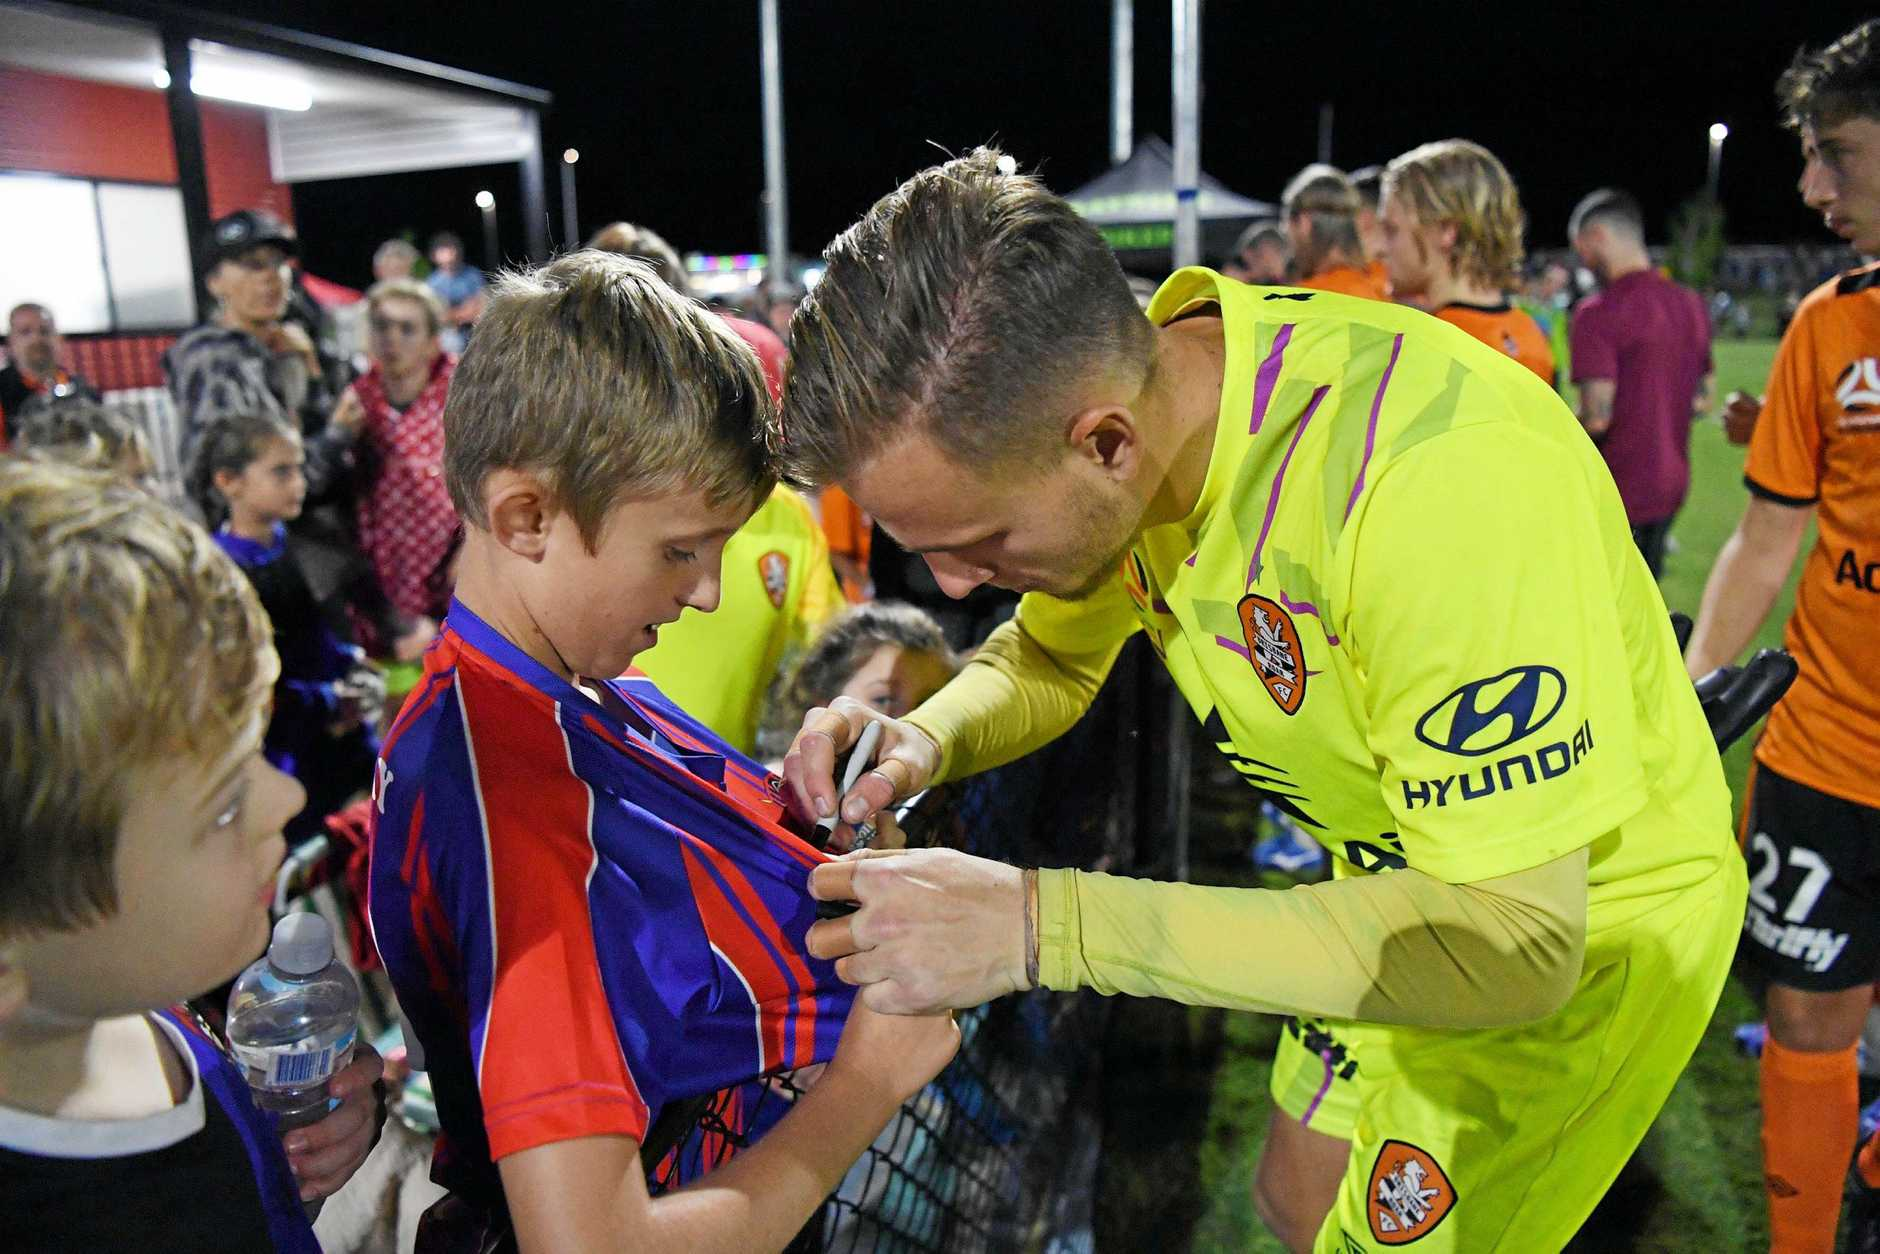 Roar goalkeeper Macklin Freke signing a local Wide Bay Buccaneers player's shirt.